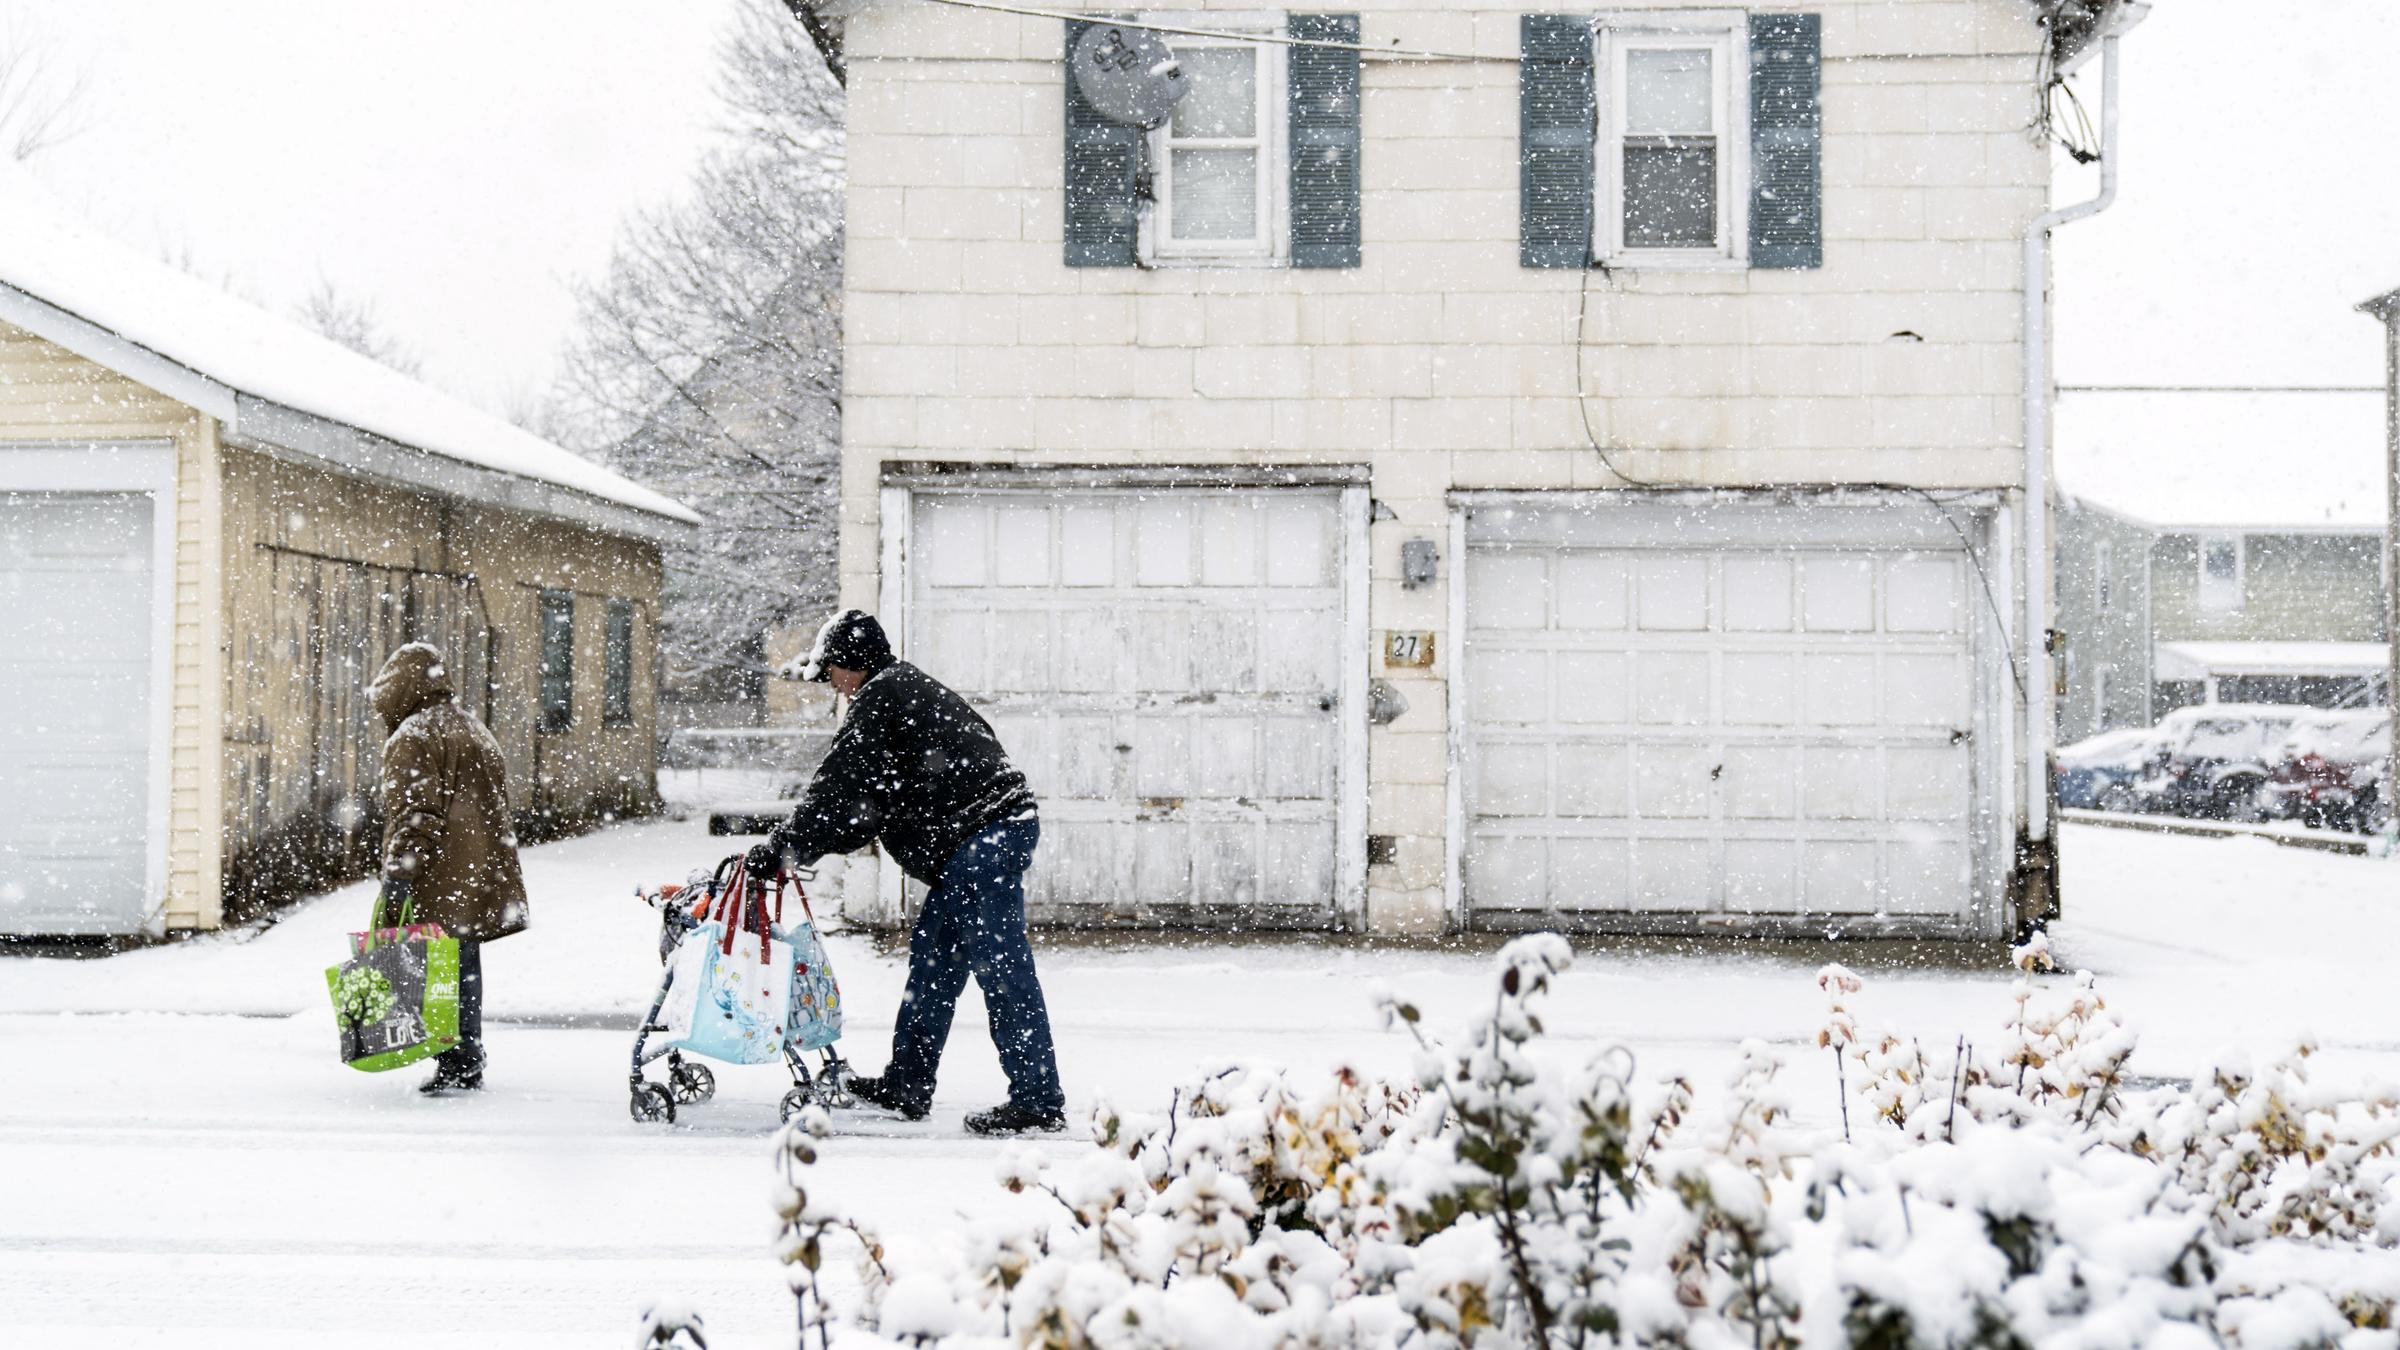 Nor'easter leaves one dead after pummeling Northeast with heavy snow